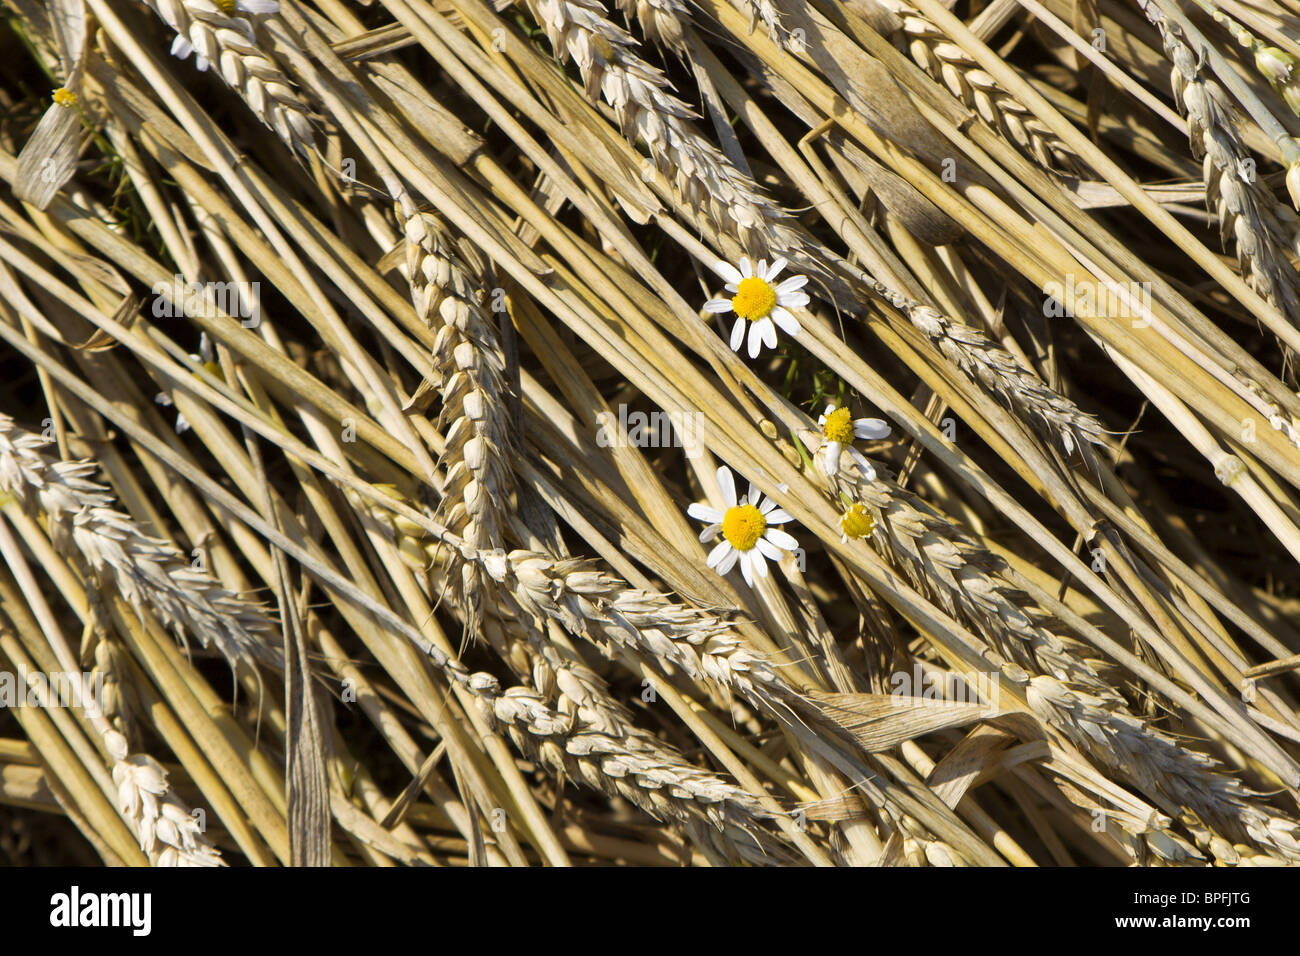 flower in the corn - Stock Image